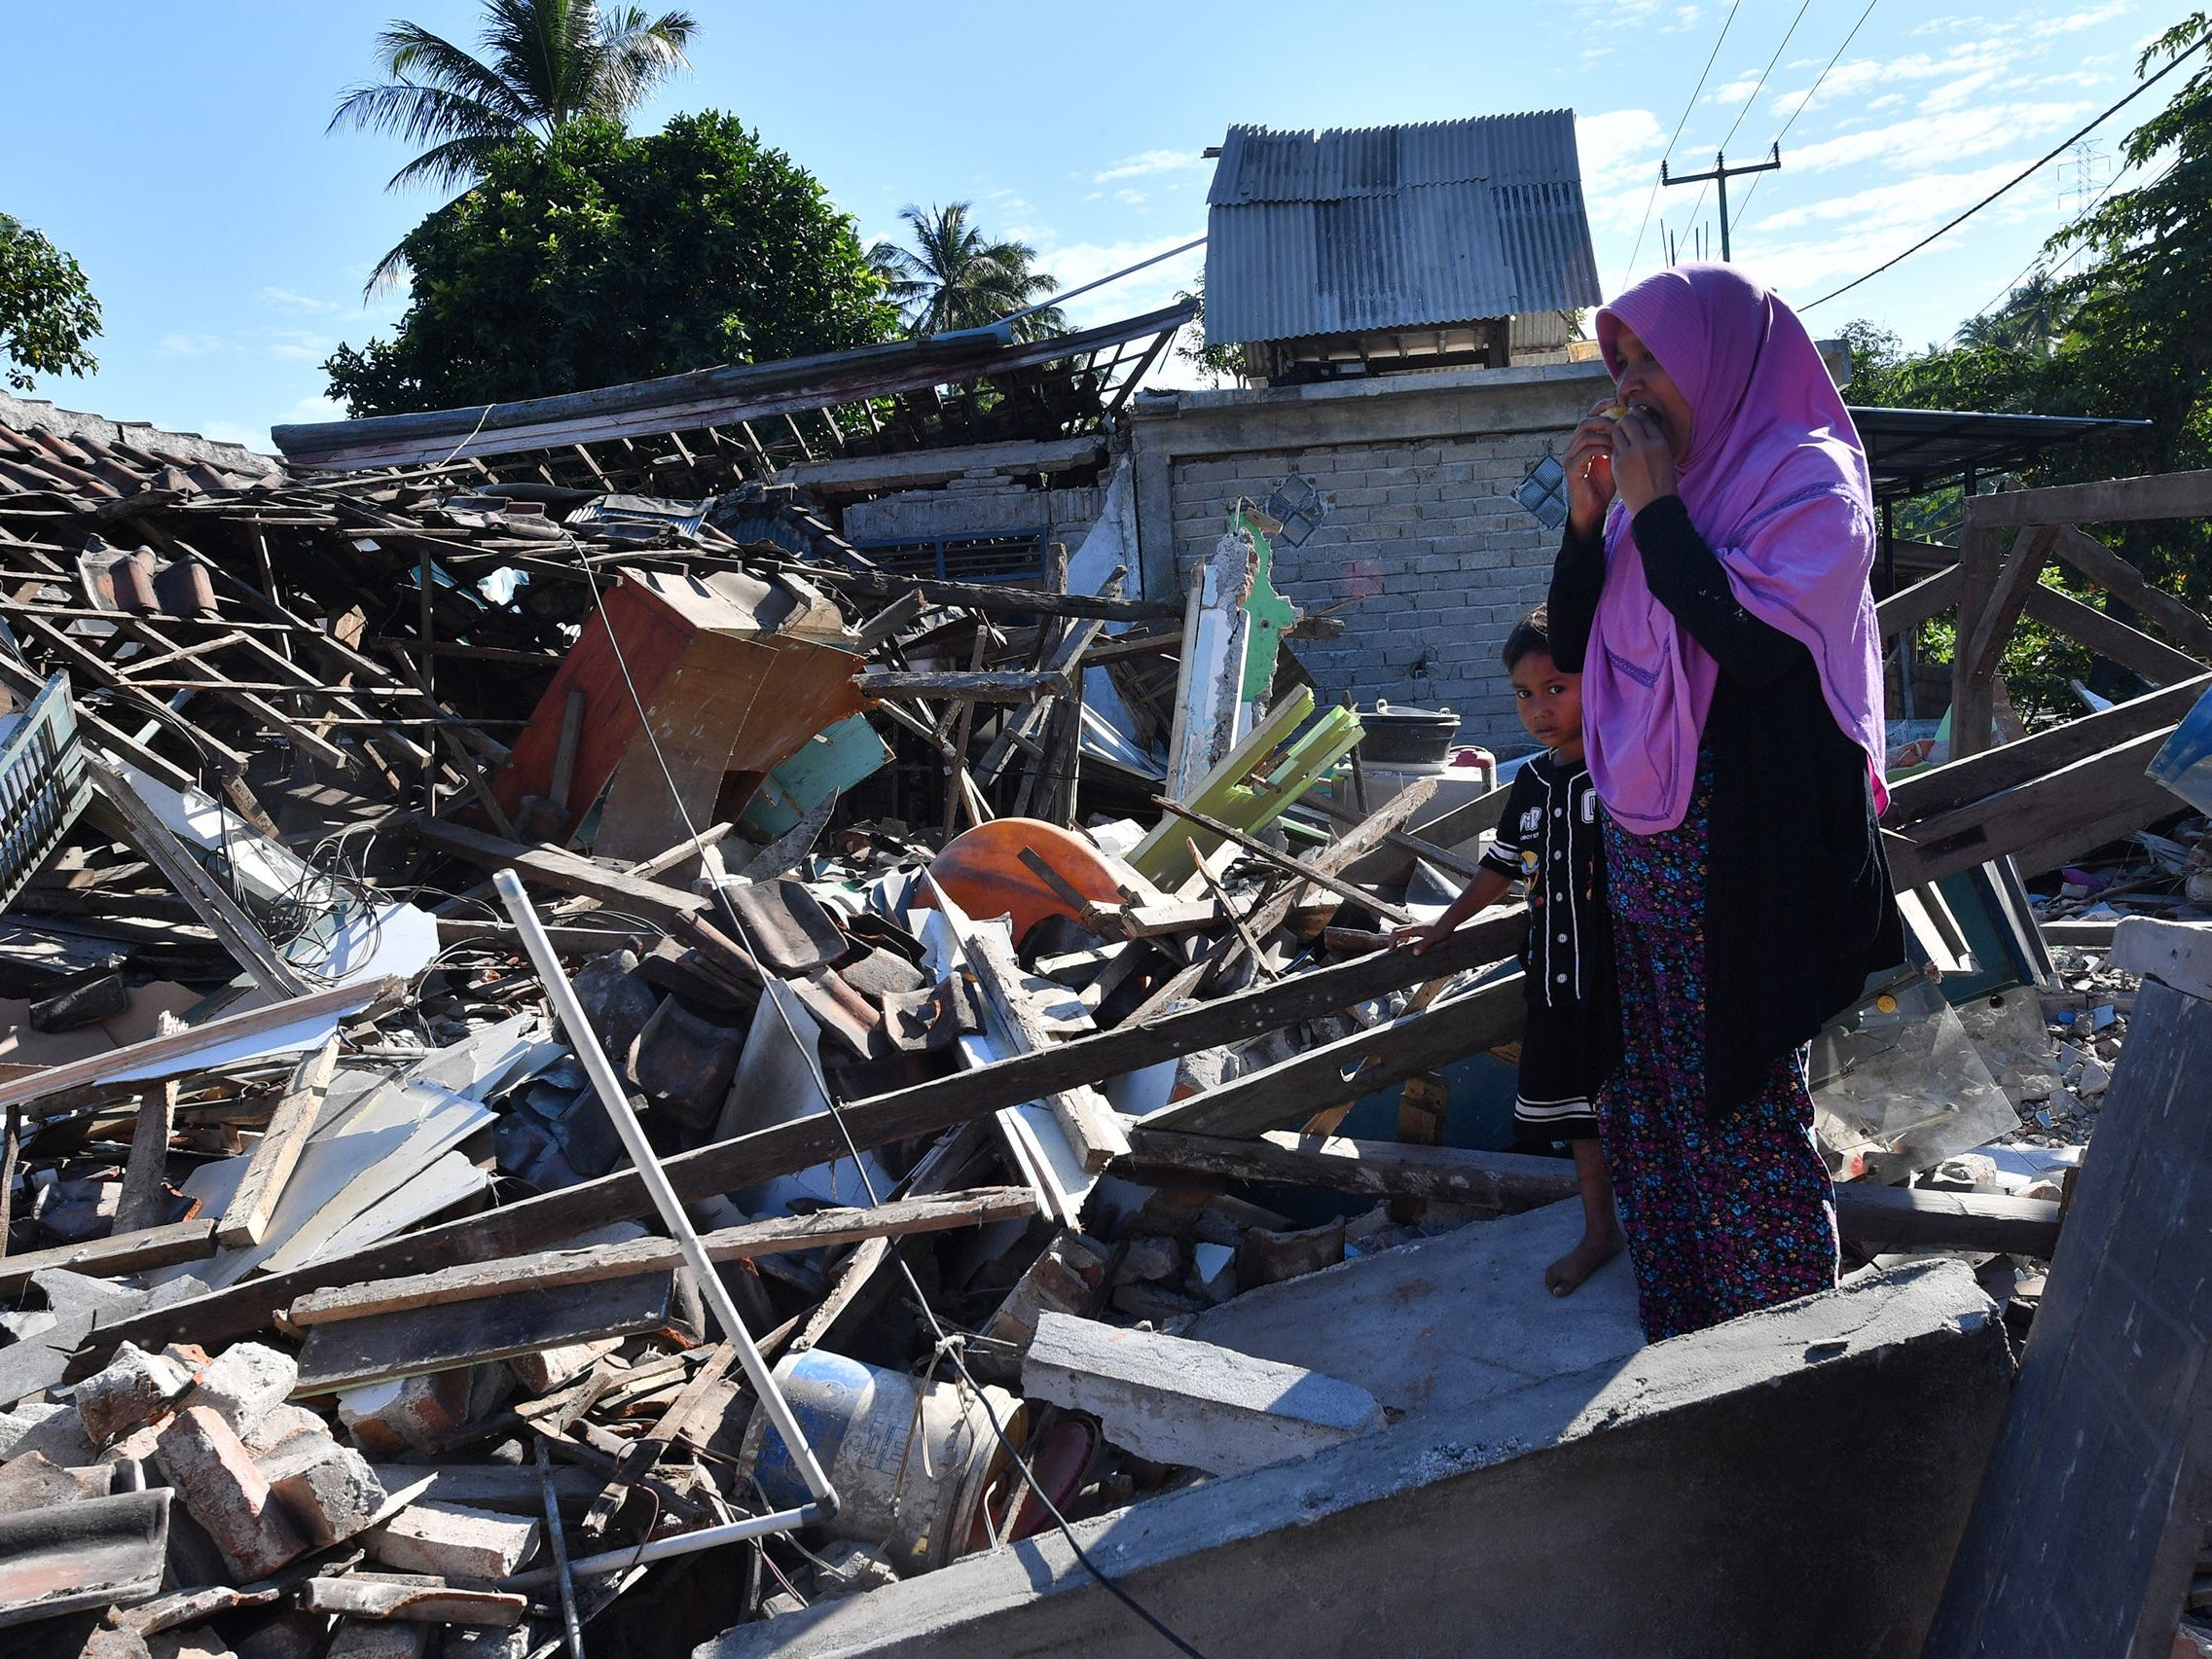 A woman and boy watch as men clear the wreckage of houses damaged by an earthquake in Menggala, North Lombok on Aug. 8, 2018, three days after the earthquake struck the area.